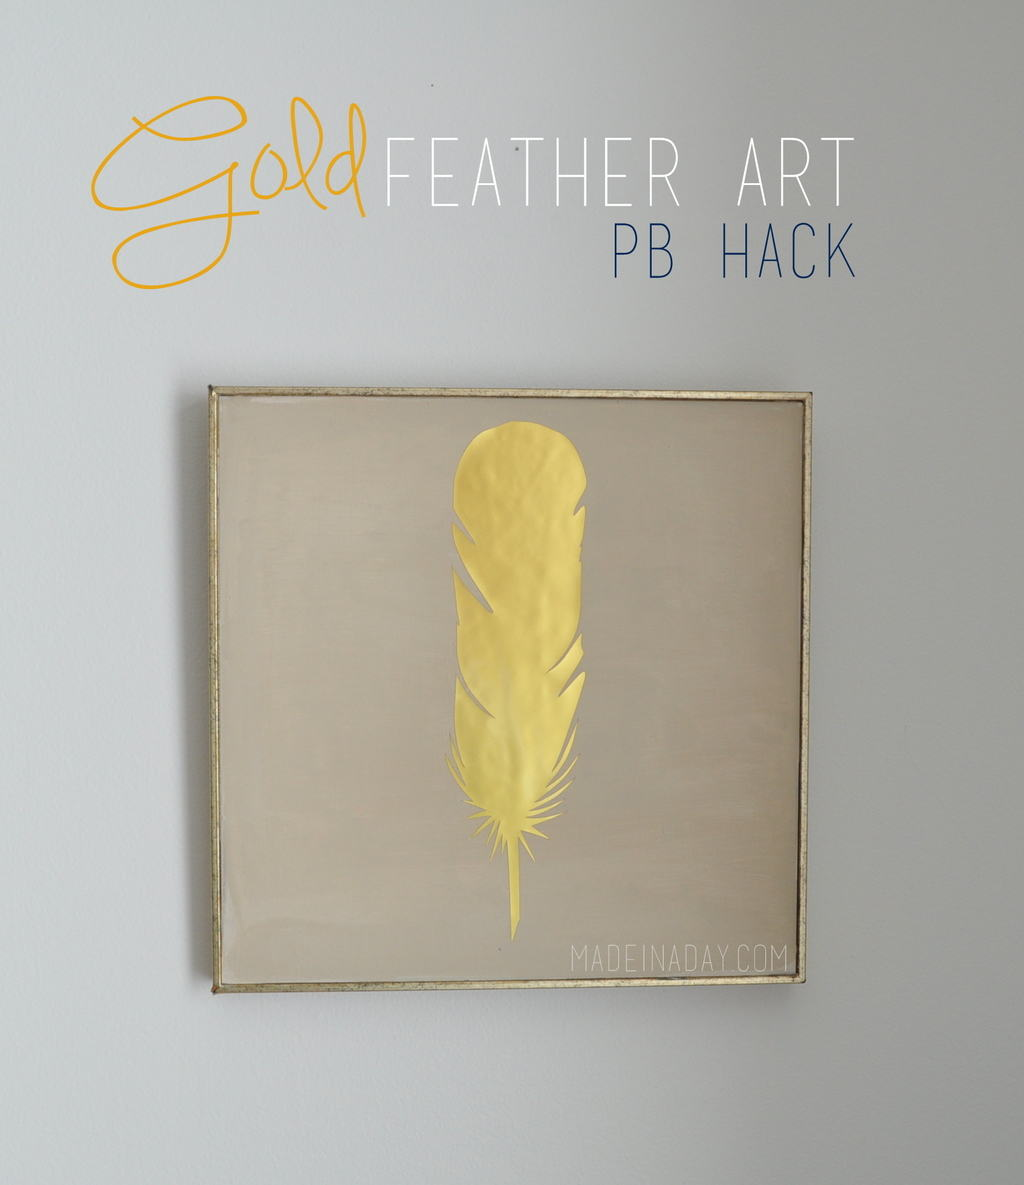 Gold wall decor diy : Gold feather wall art pb hack